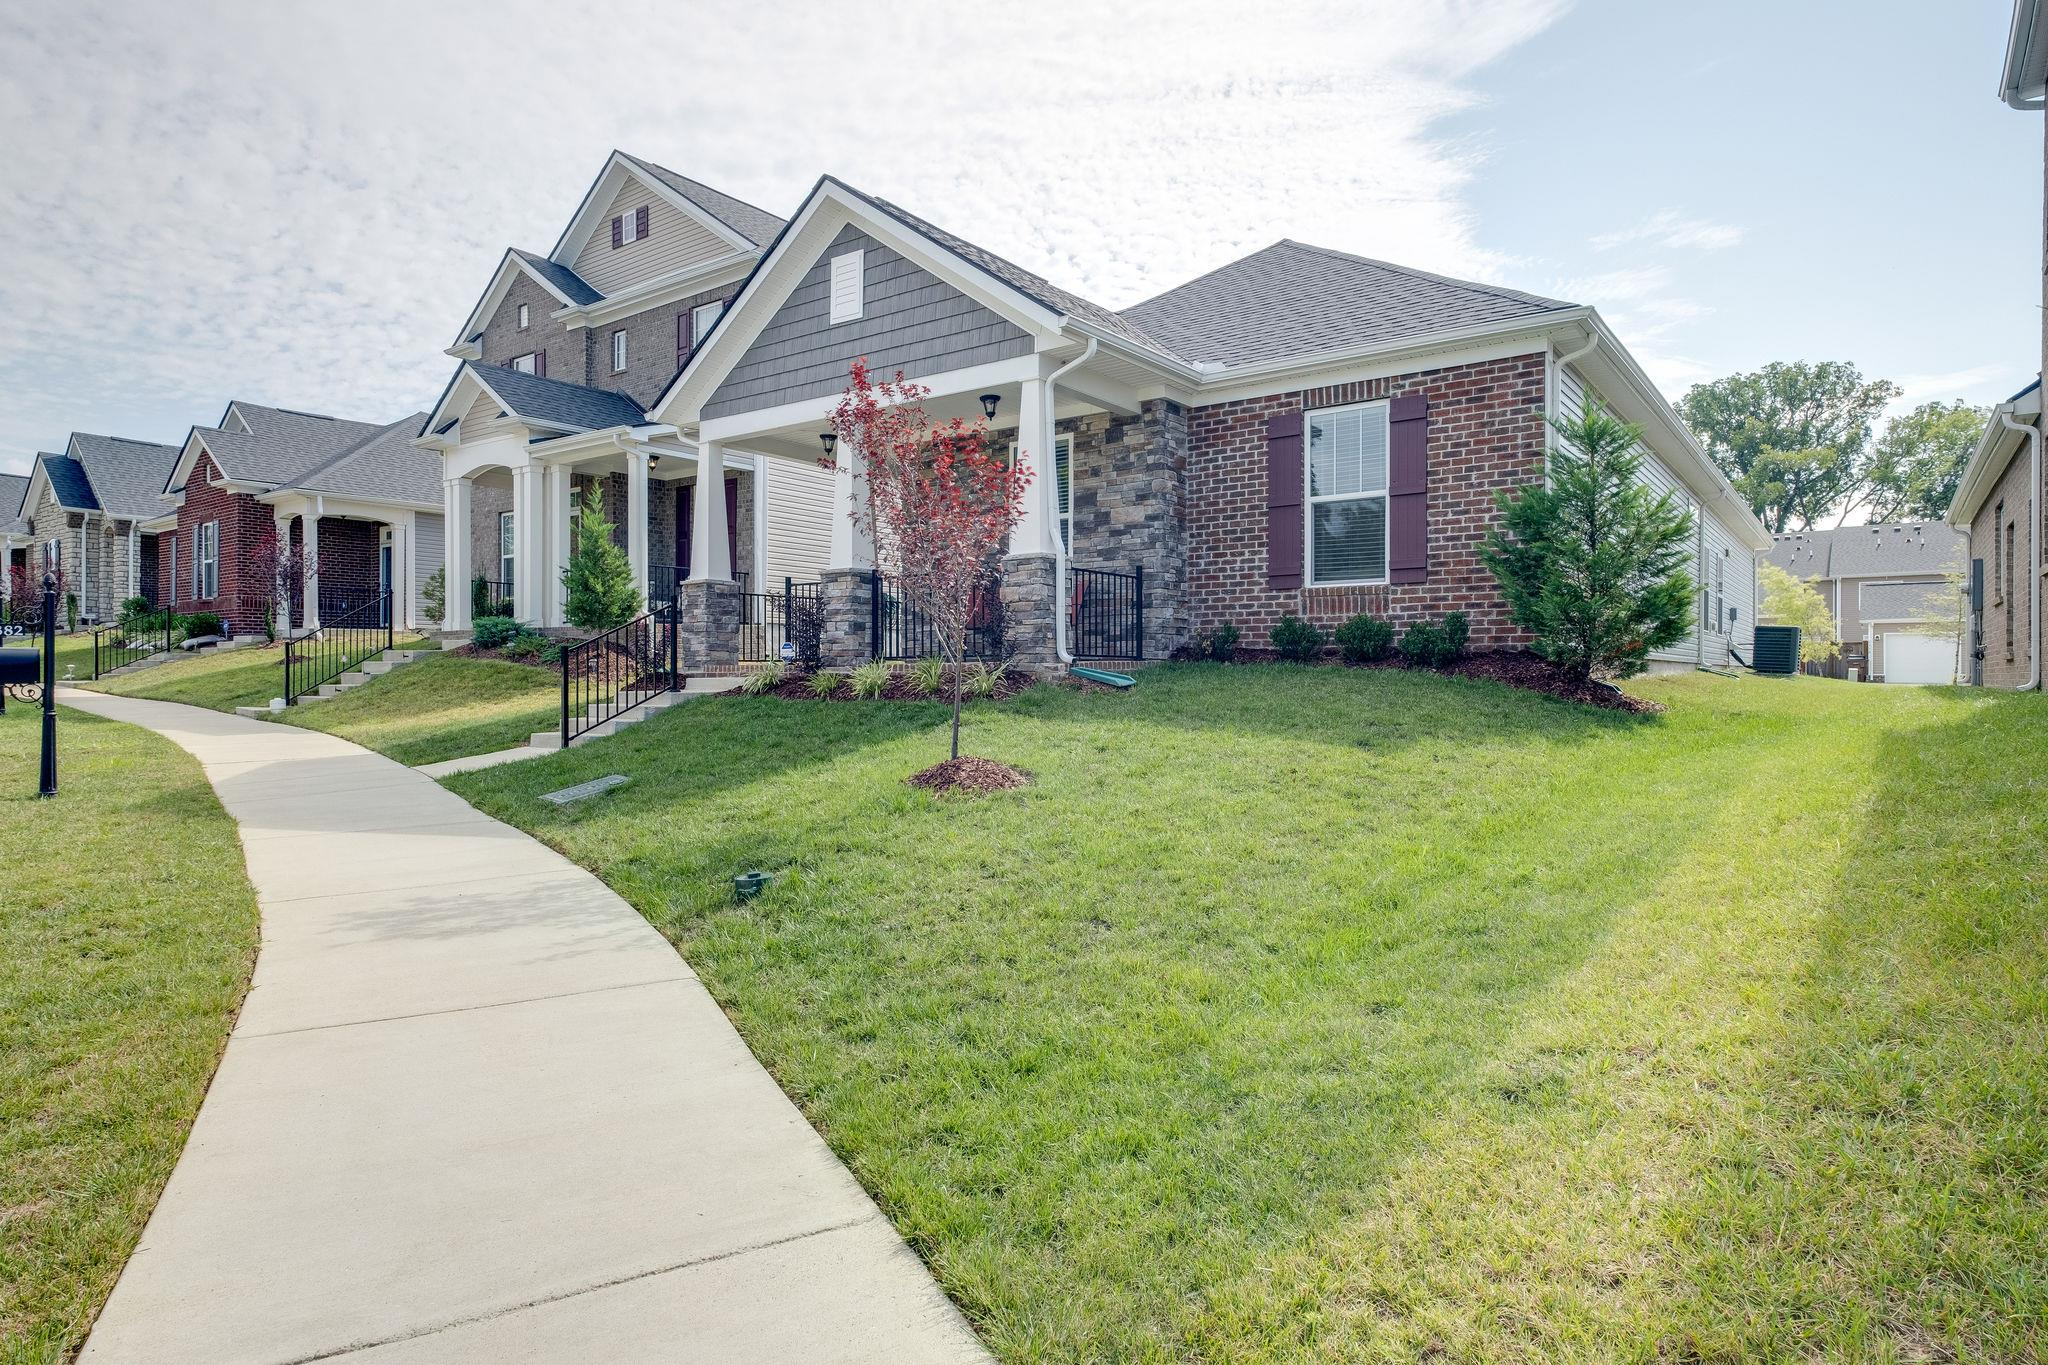 2882 Whitebirch Dr, Hermitage in Davidson County County, TN 37076 Home for Sale